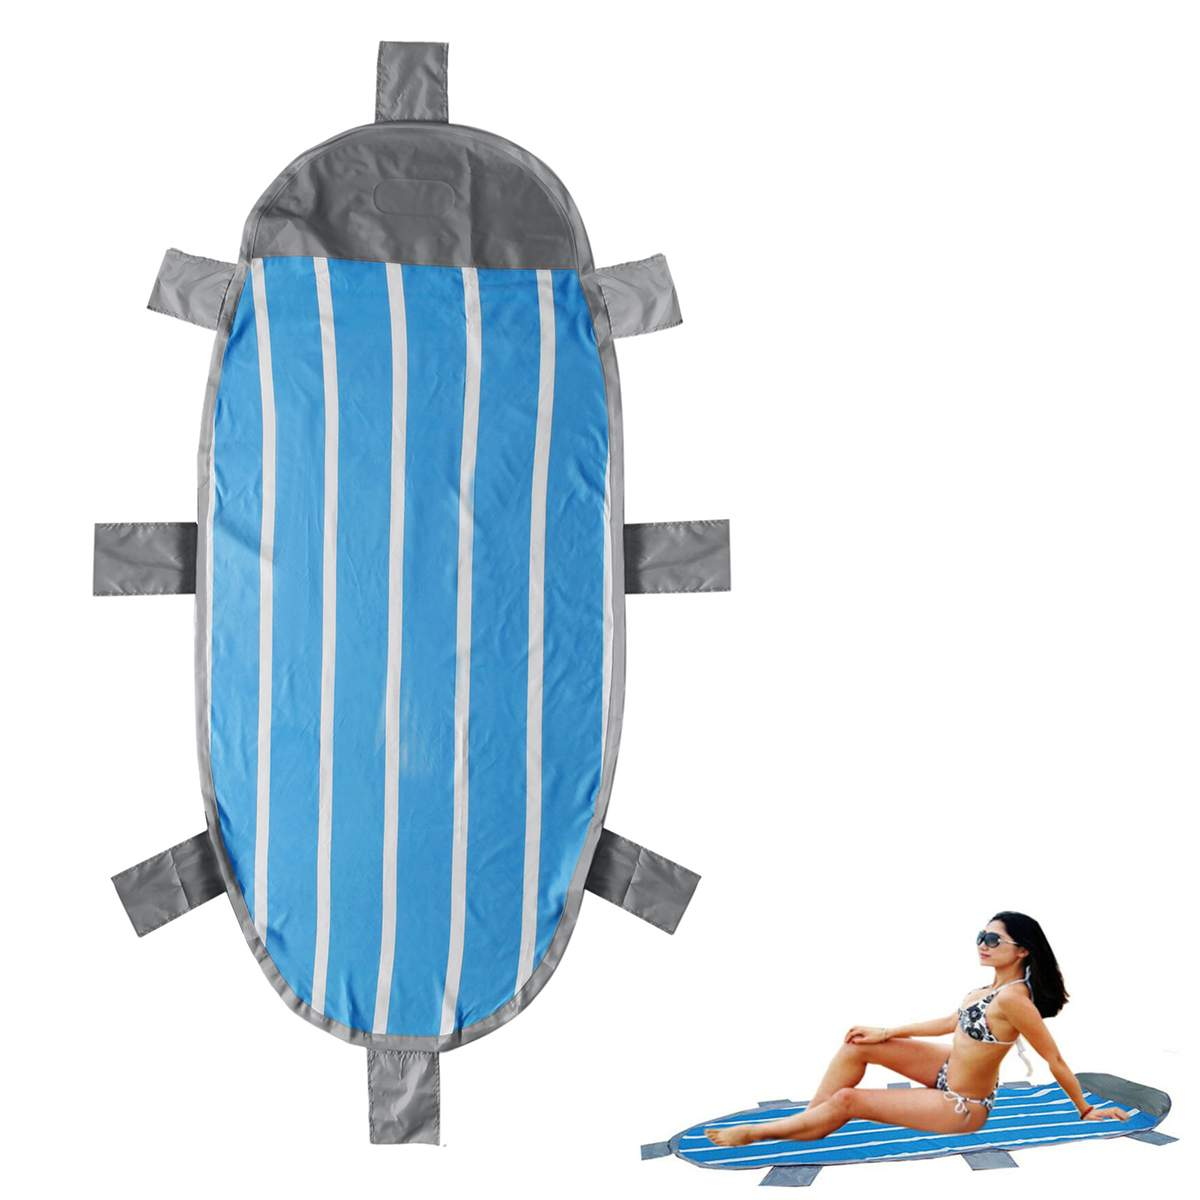 Wakects Inflatable Air Bed Moisture Floor Mat with Inflatable Pillow for Picnic Camping Beach Garden